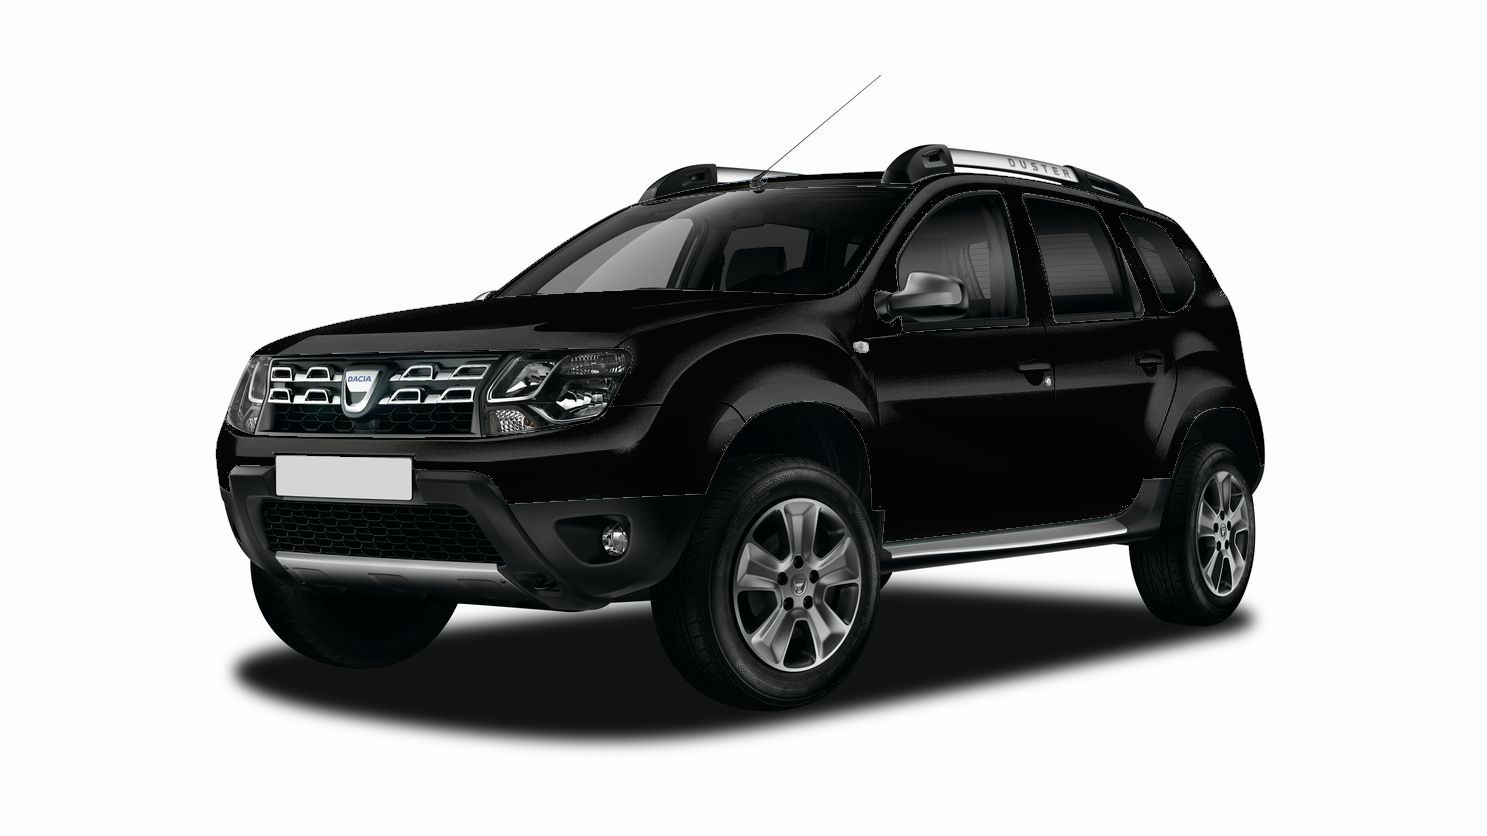 dacia duster 4x2 et suv 5 portes diesel 1 5 dci. Black Bedroom Furniture Sets. Home Design Ideas